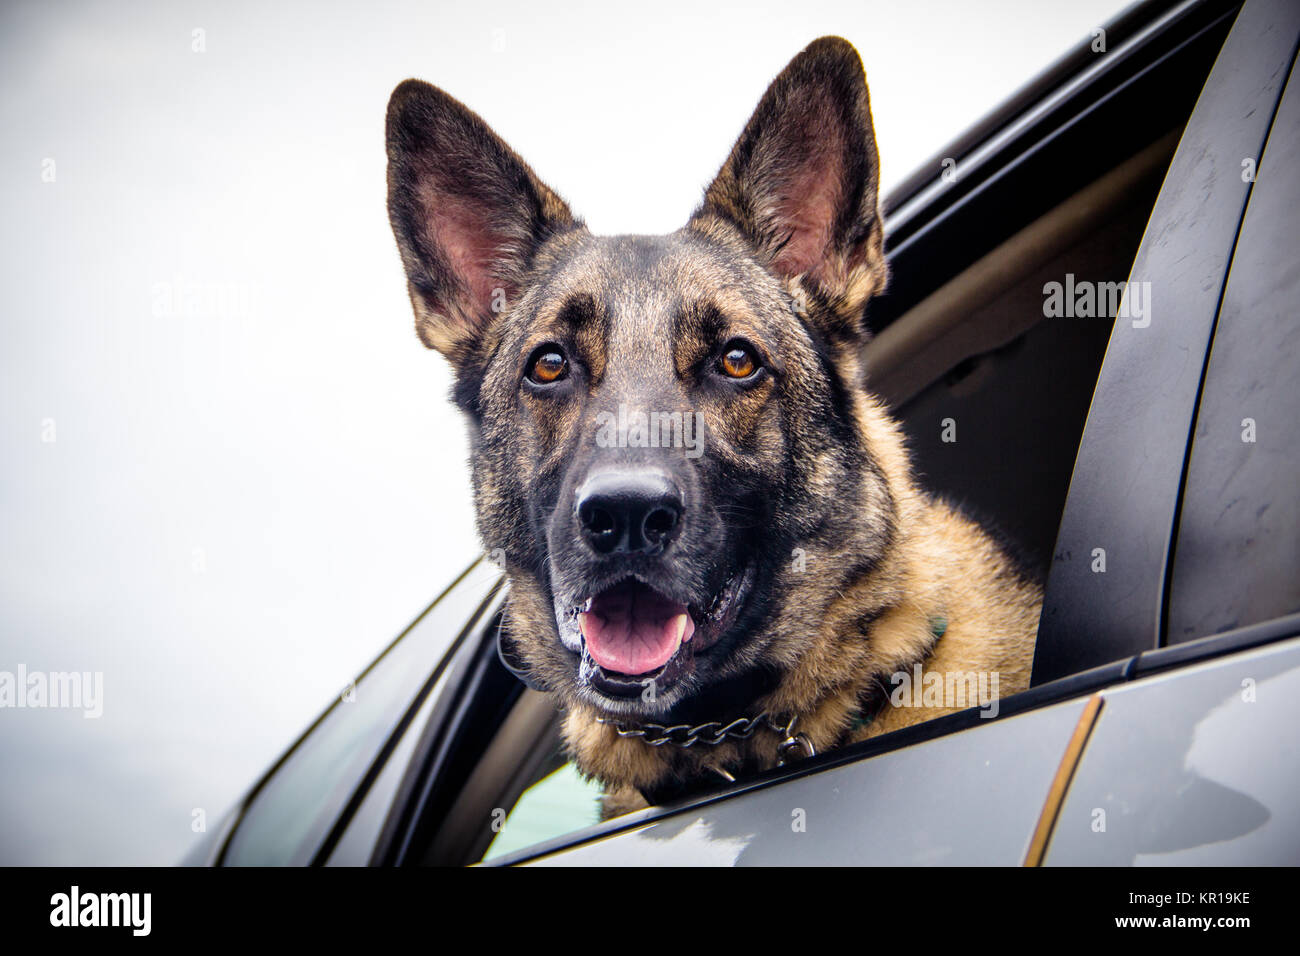 German shepherd dog leaning out of a car window - Stock Image